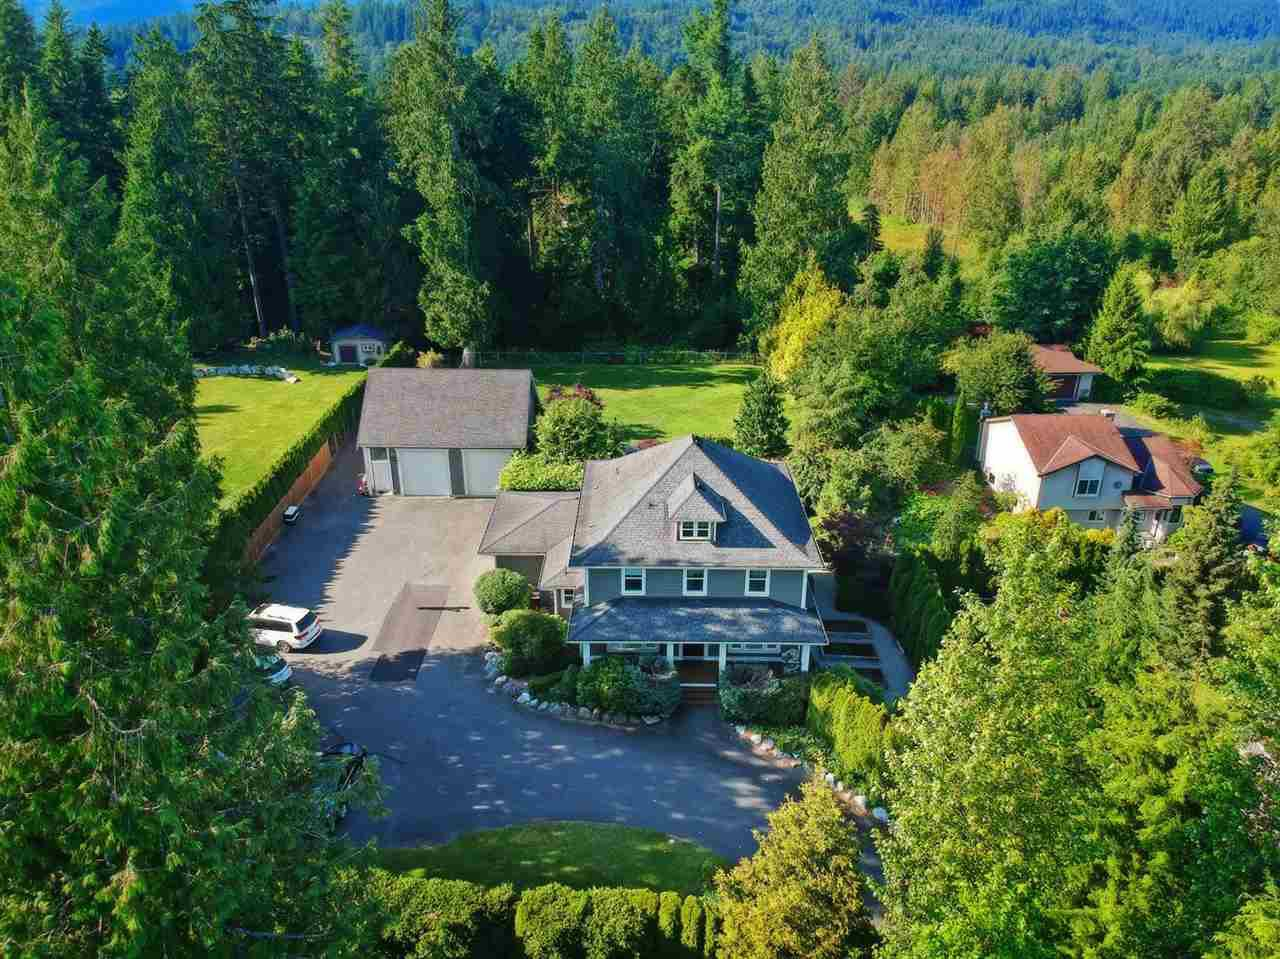 """Main Photo: 33157 TUNBRIDGE Avenue in Mission: Mission BC House for sale in """"Cedar Valley"""" : MLS®# R2475280"""